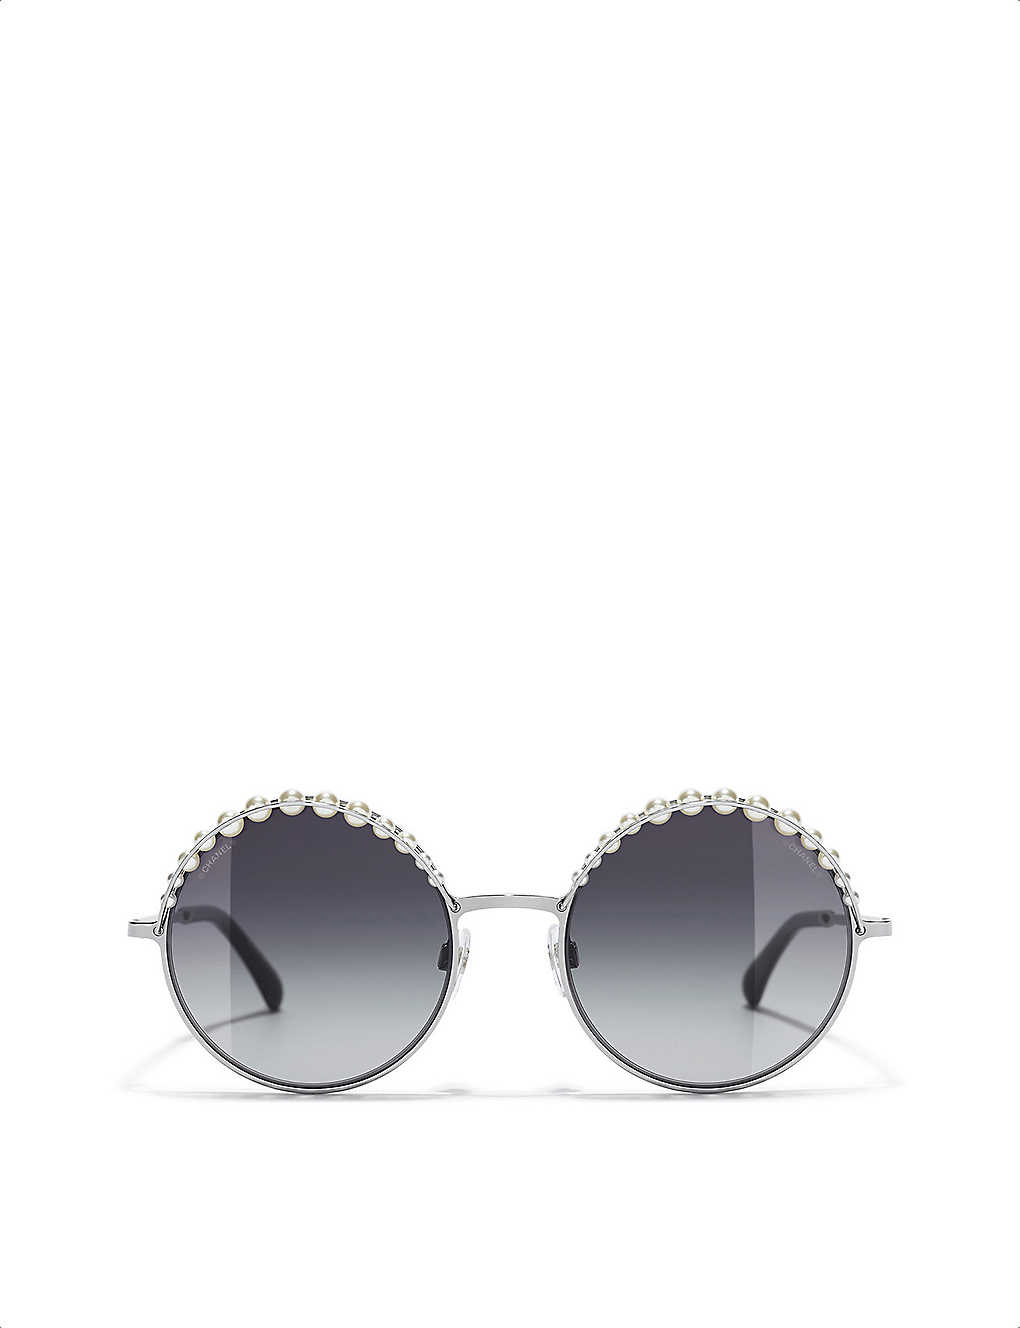 f14d3b4405 CHANEL - Round sunglasses